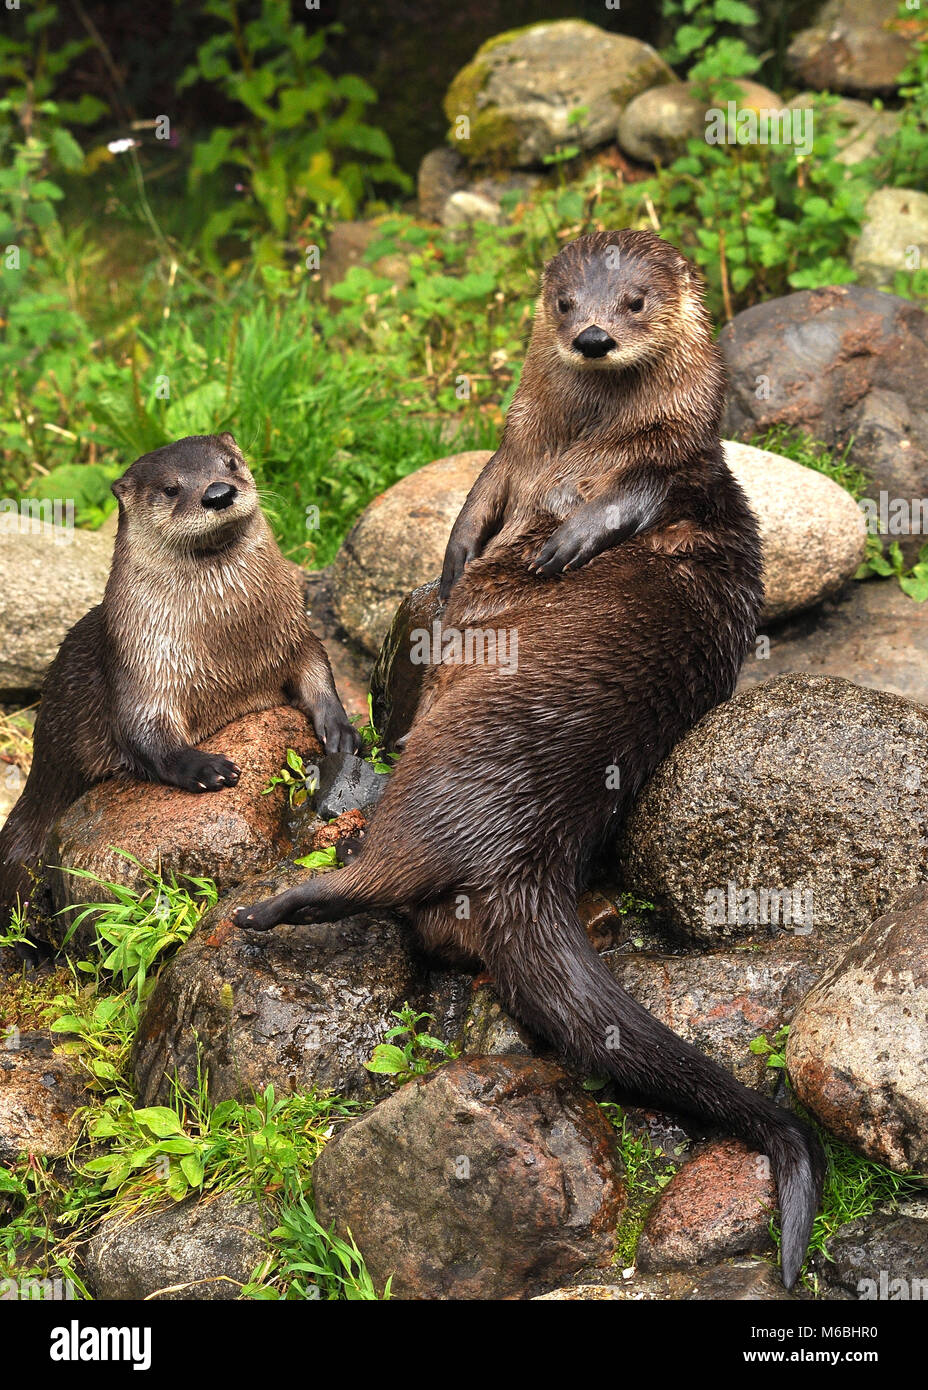 Pair of Eurasian Otters (Lutra lutra) sitting on top of rocks. Highland Wildlife park, Scotland Stock Photo